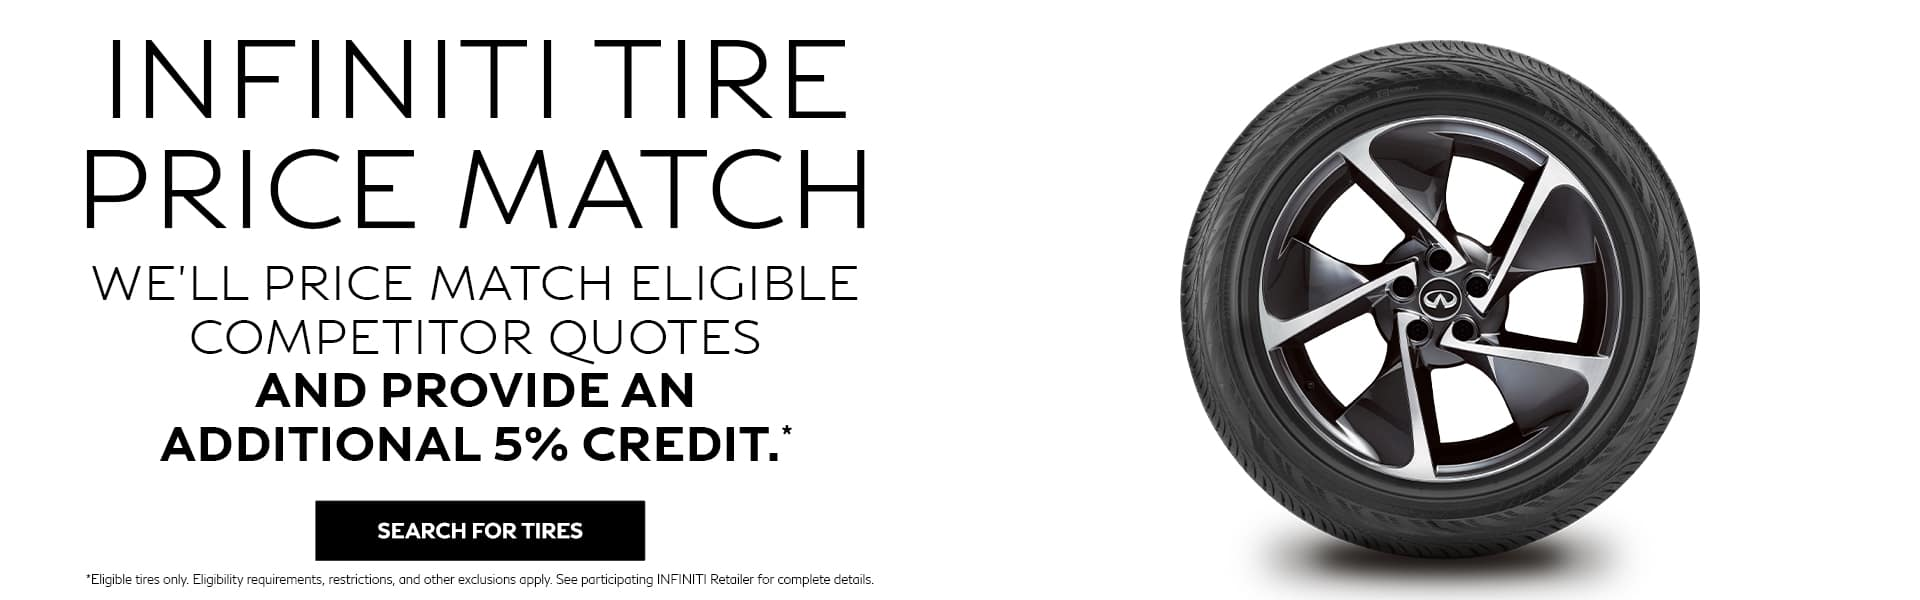 INFINITI Tire Price Match - We'll Price Match Eligible Competitor Quotes and Provide an Additional 5% Credit